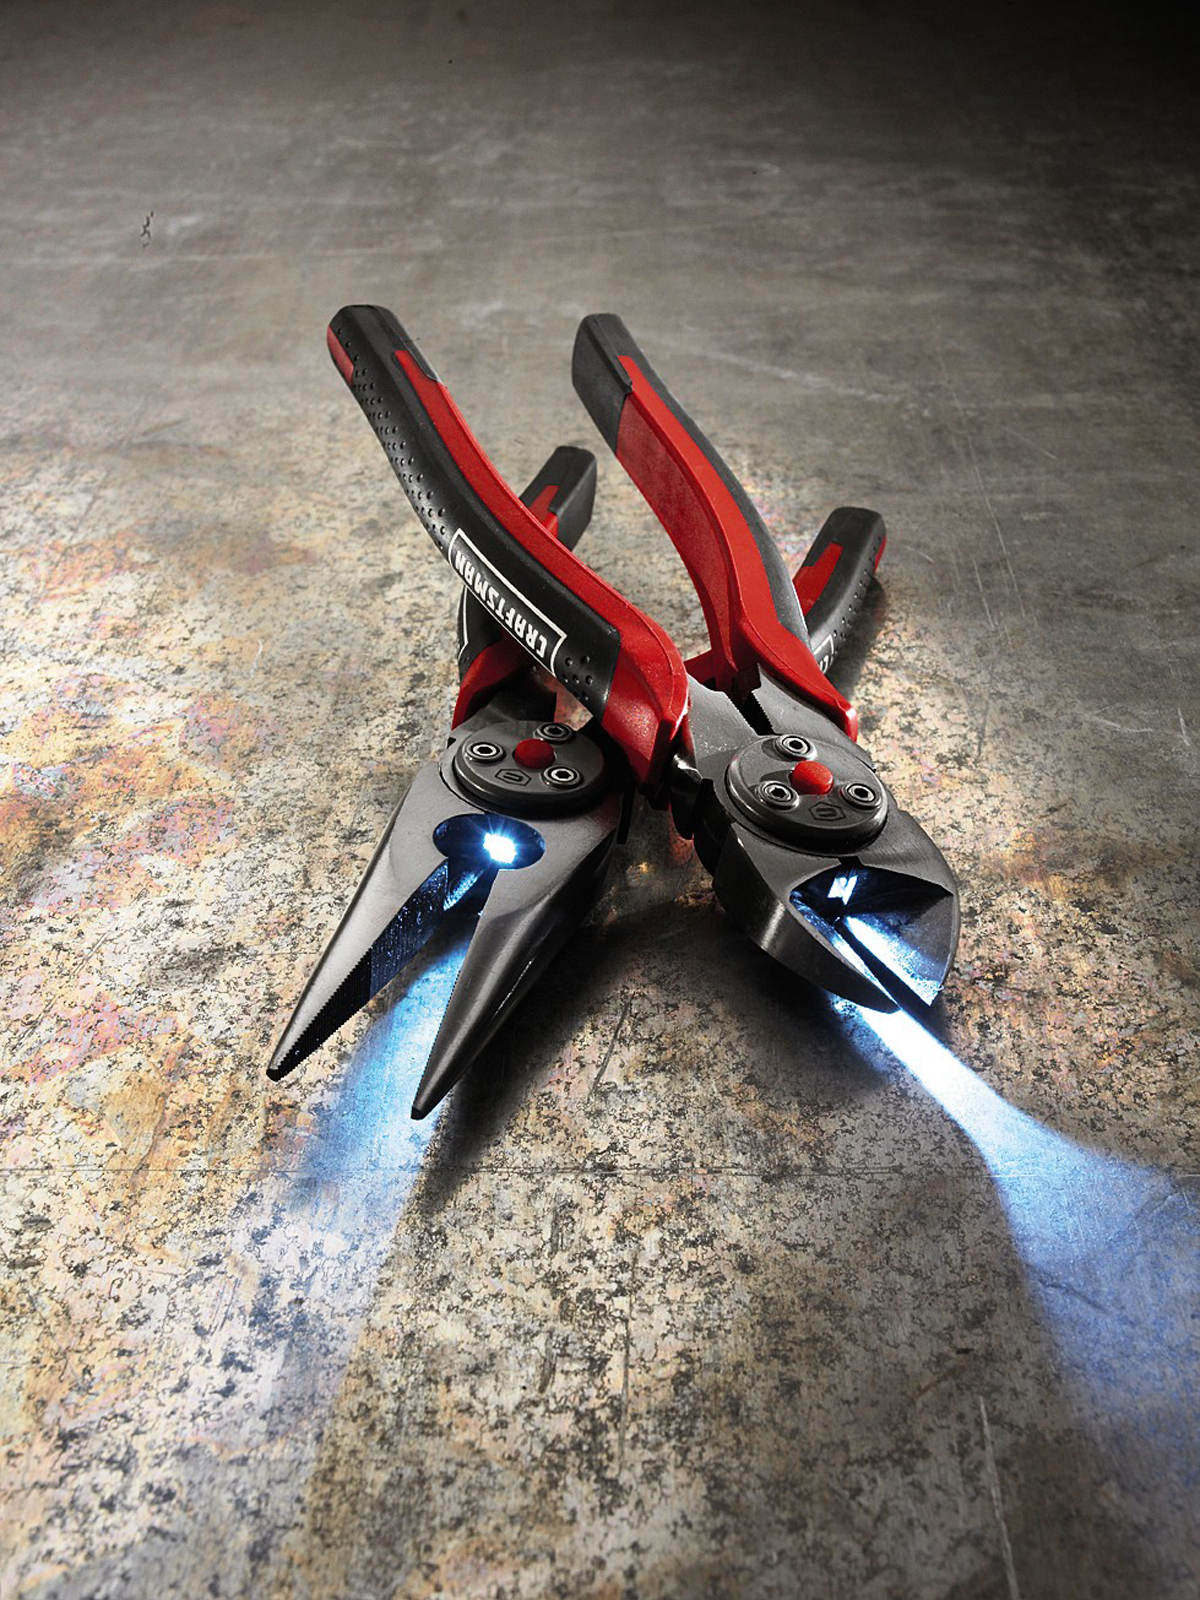 Craftsman 8-in. LED Lighted Long Nose & Diagonal Pliers Set